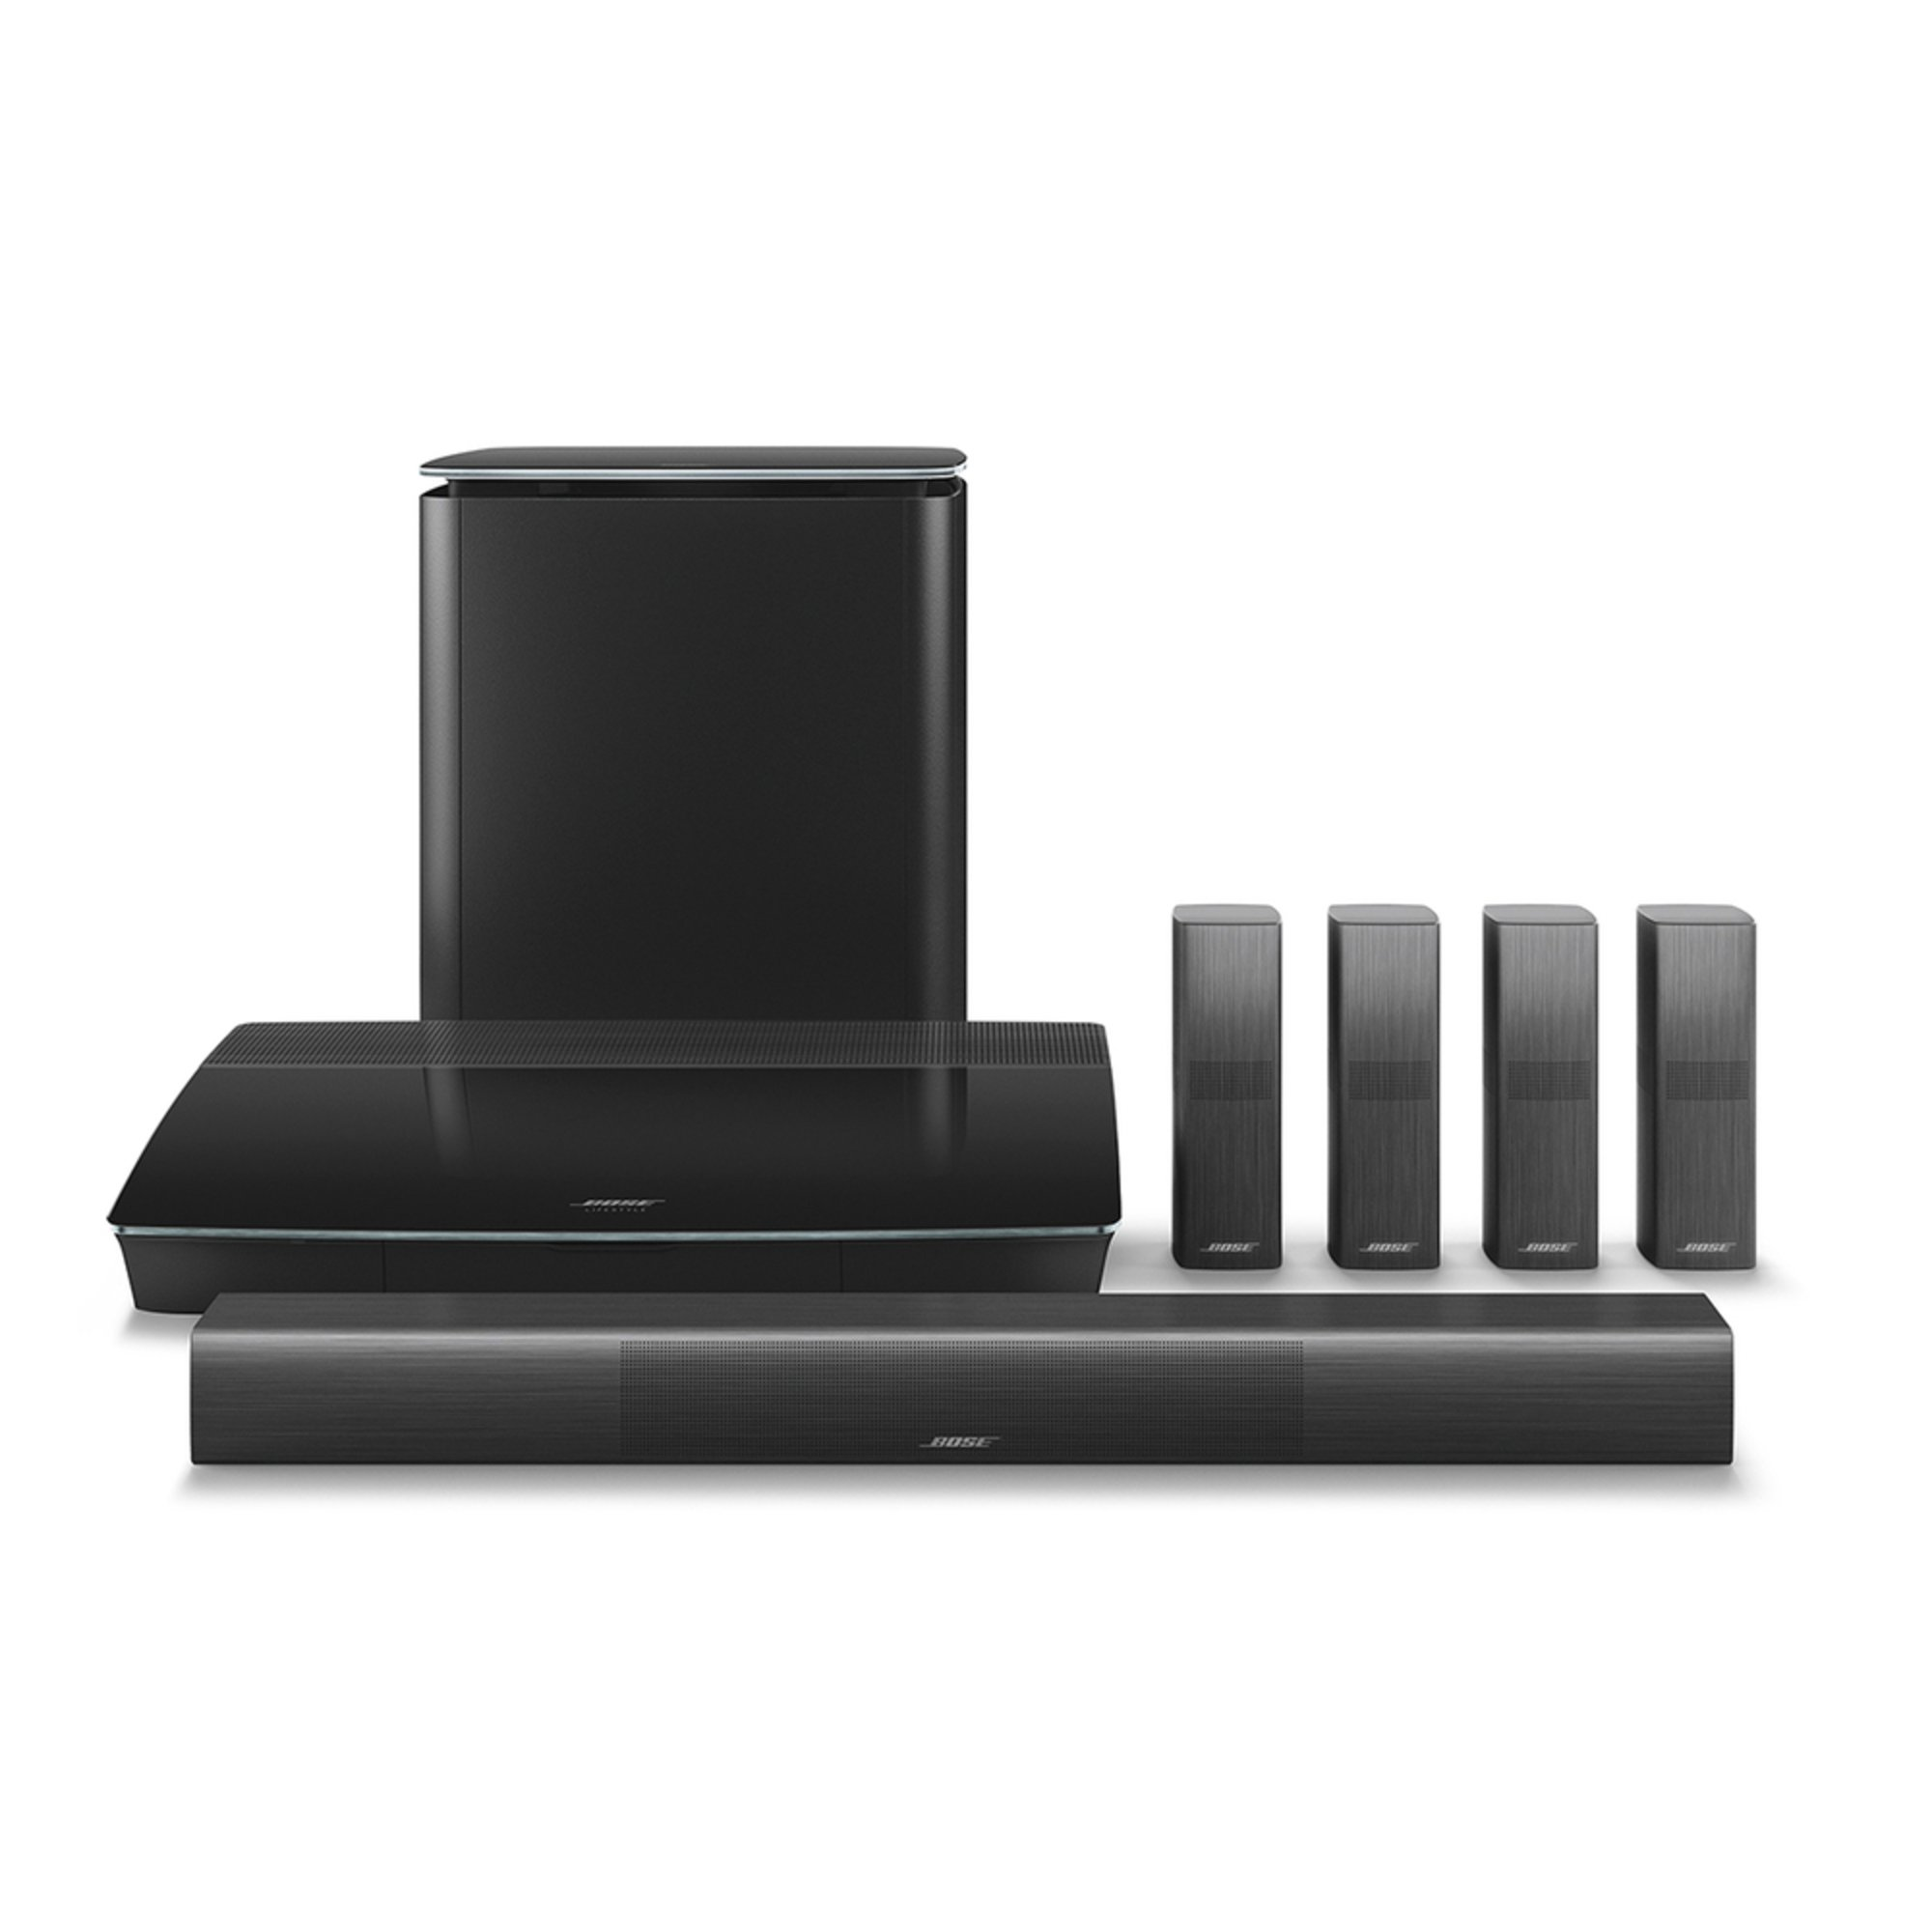 fbb7ad5083 Bose Lifestyle 650 Home Entertainment System